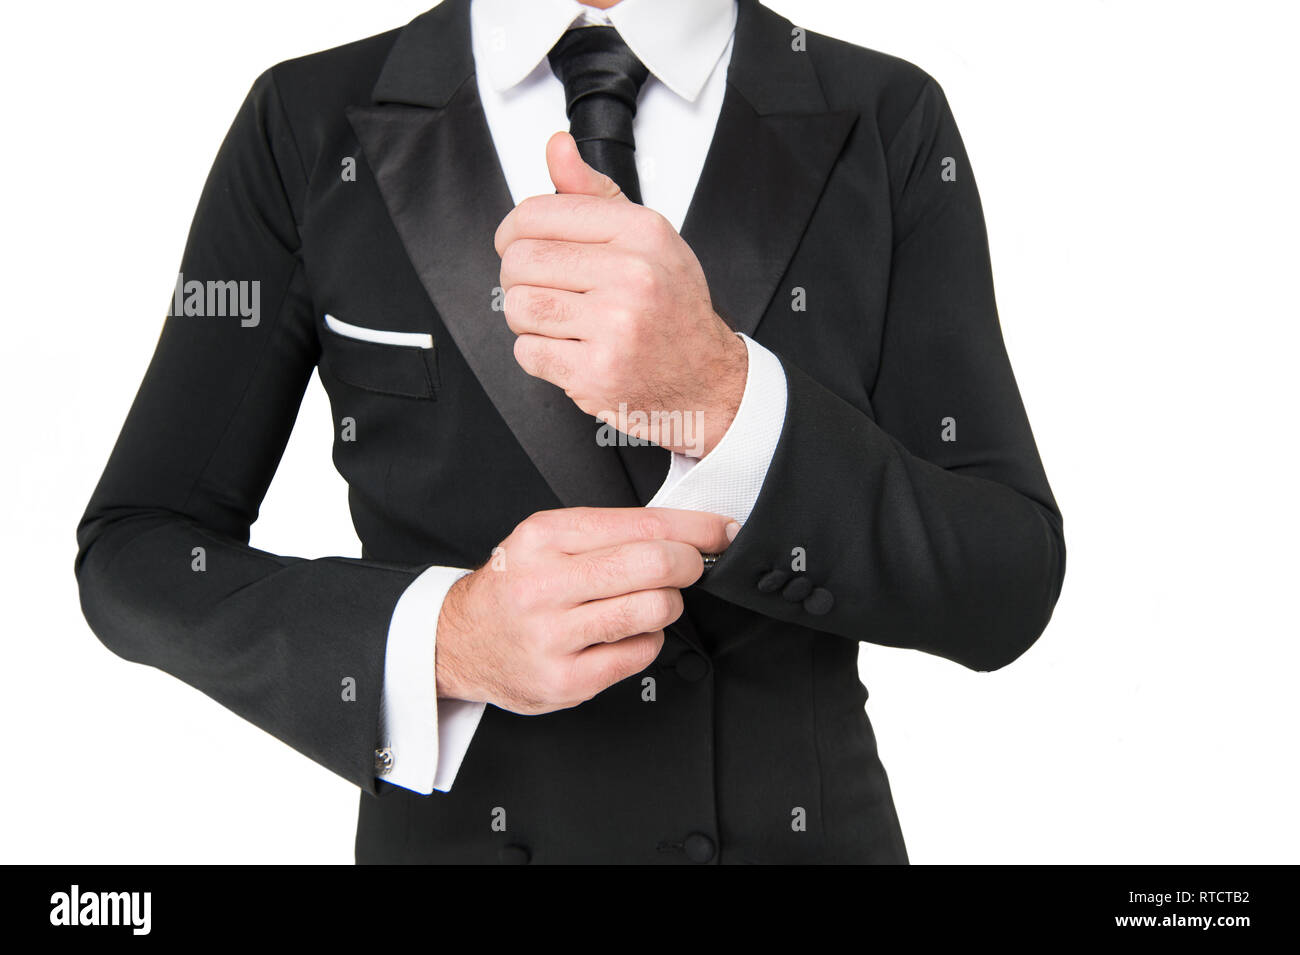 Hand fix white shirt sleeve cuff with cufflink. Business fashion style concept. - Stock Image